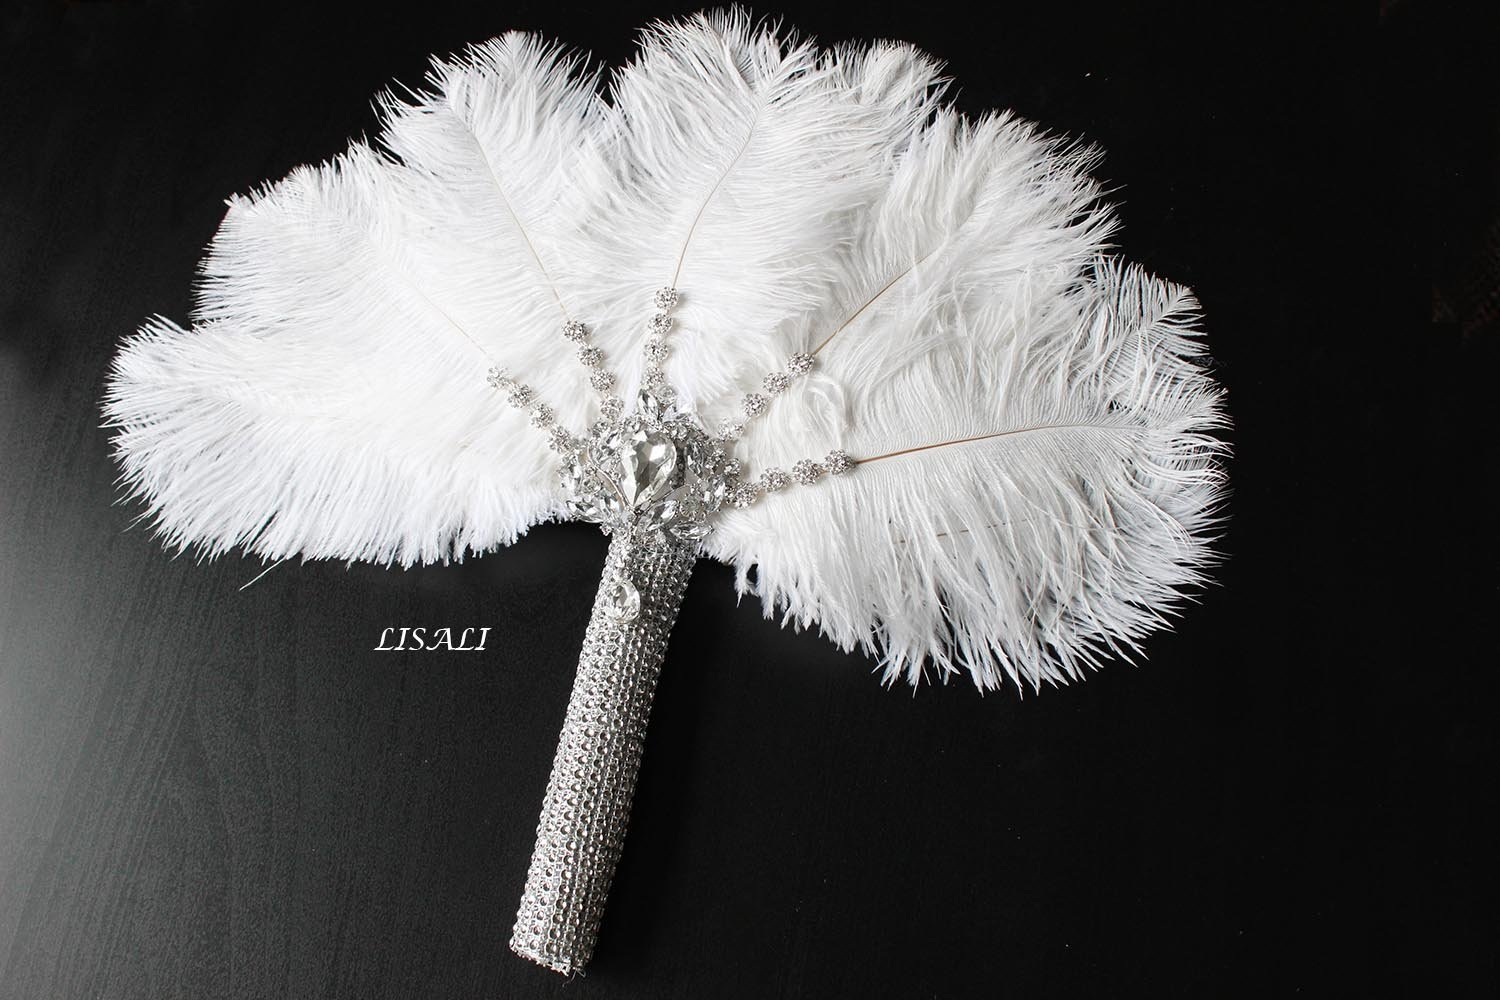 LISALI Bling Bling Bride Feather Bouquet Feather Fan Bridal Fan Peacock Handfasting 20s Great Gatsby Vintage Brooch Bouquet